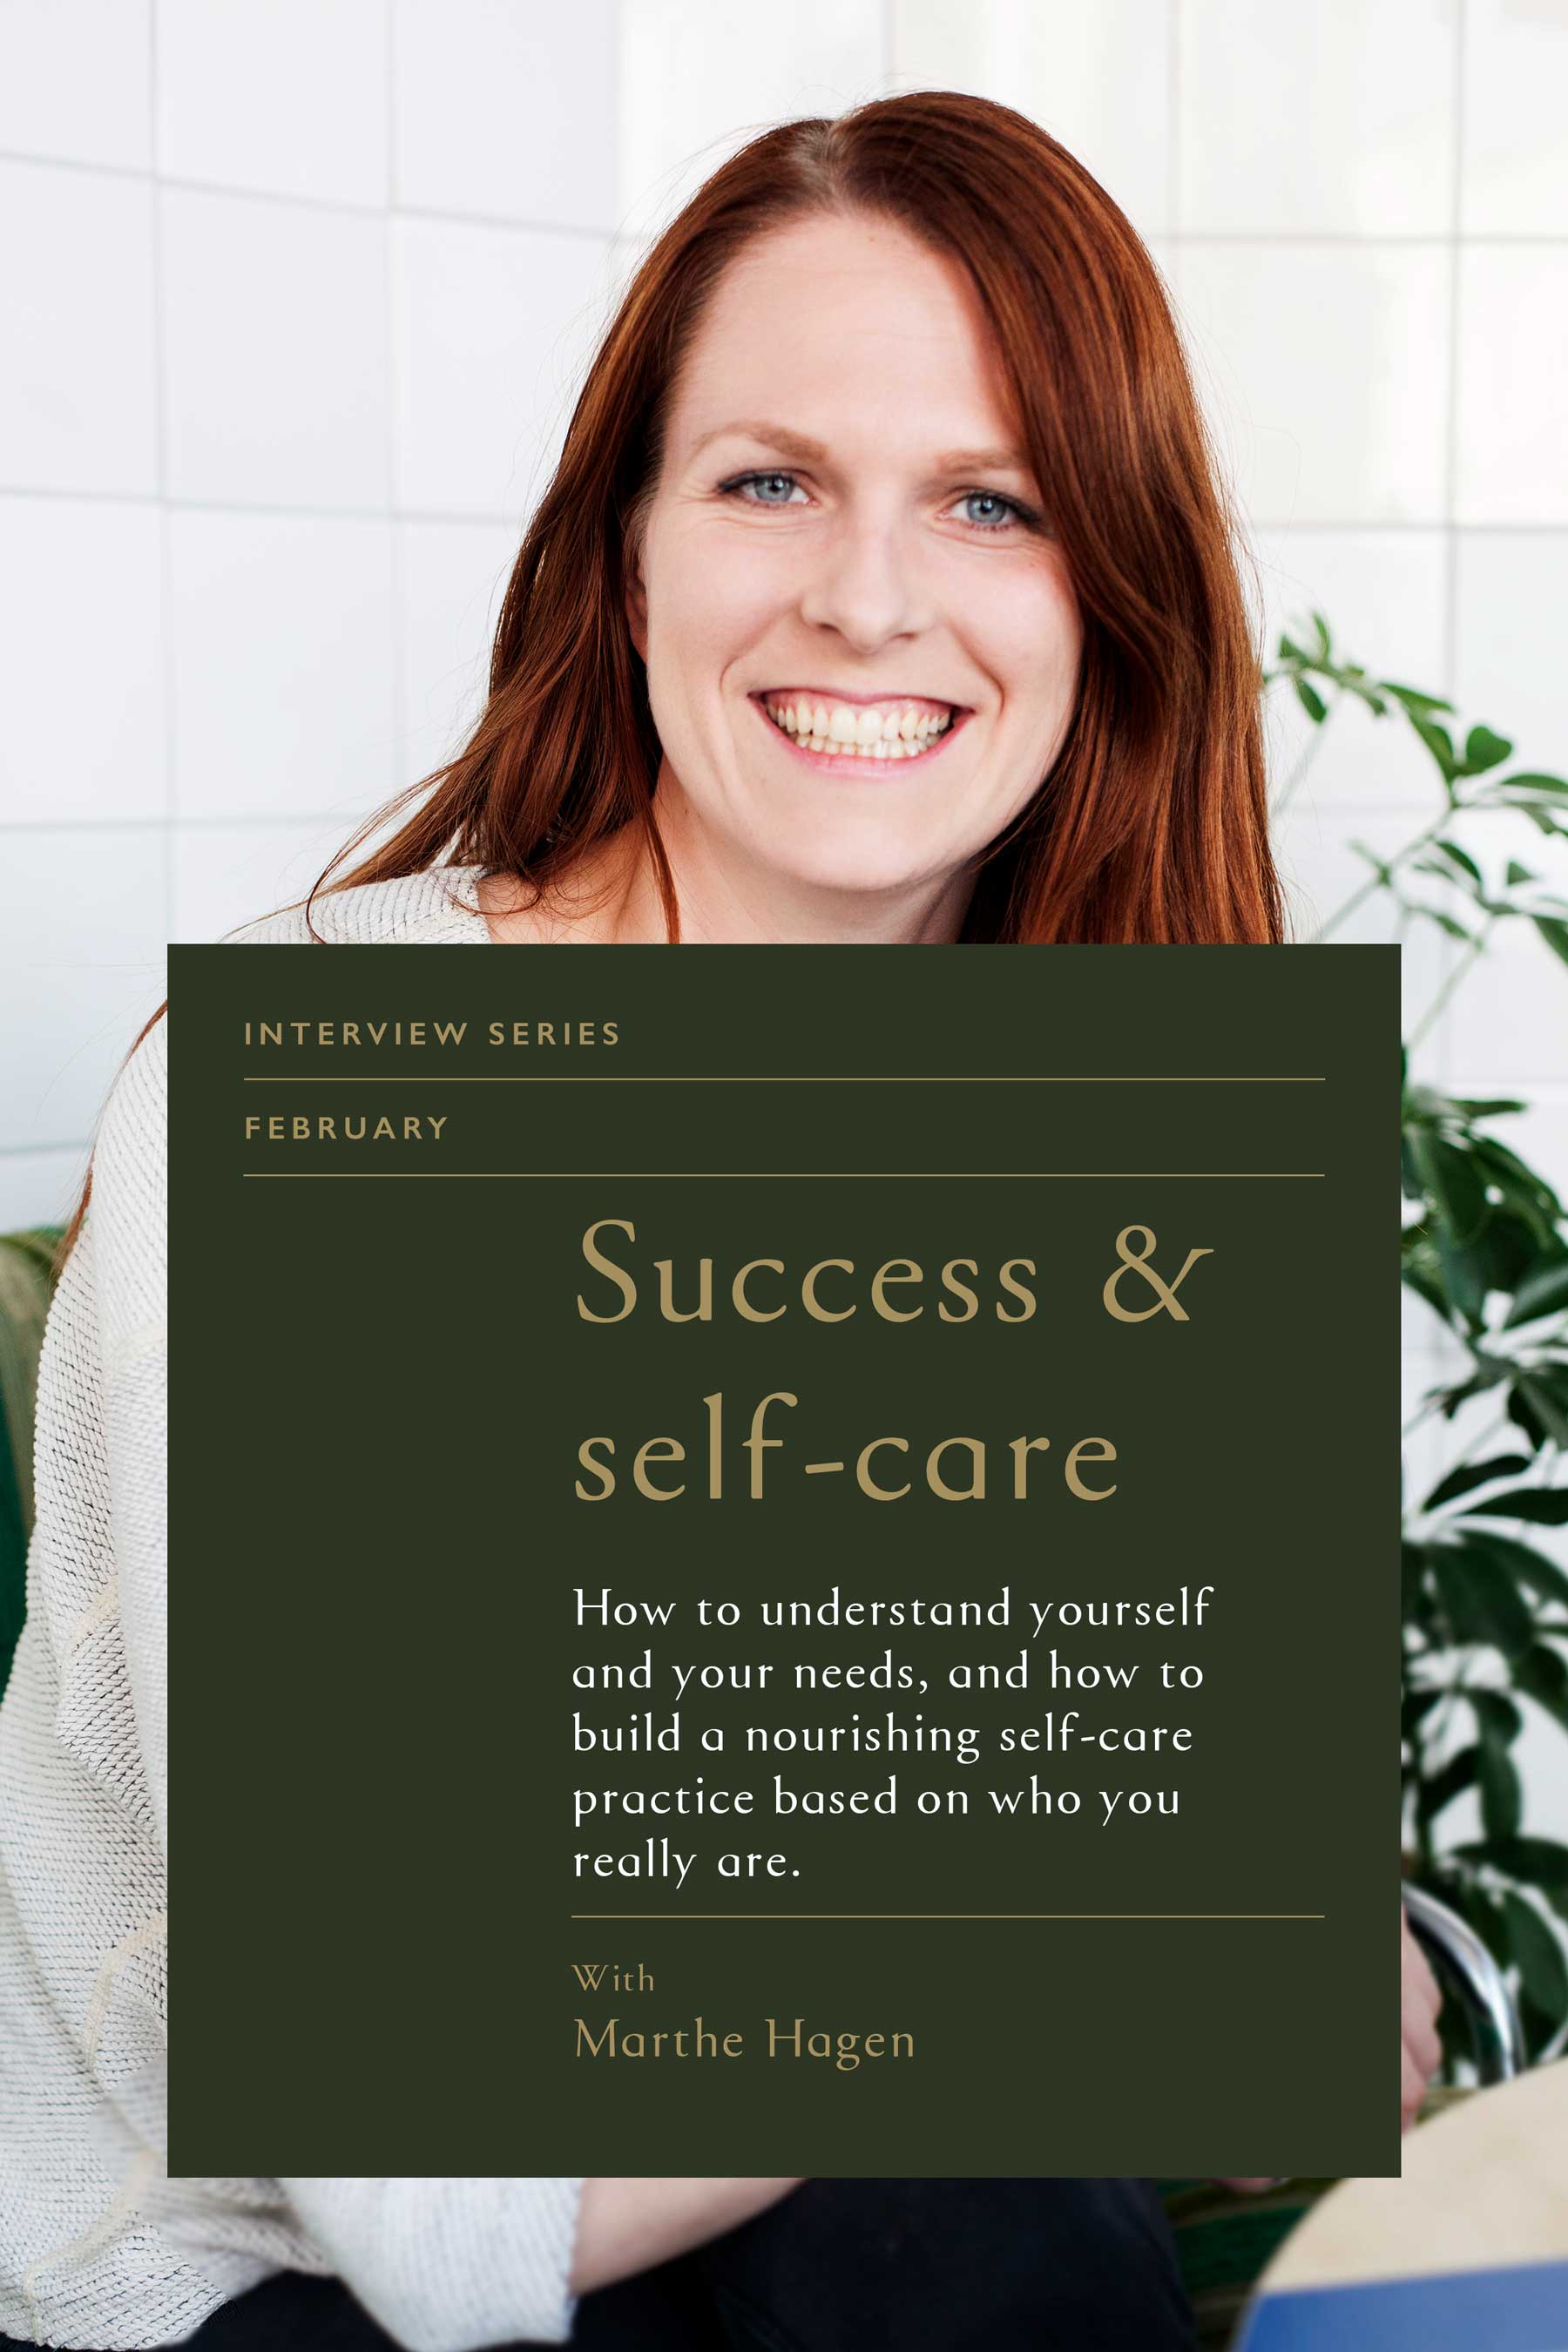 Success & Self-care | How to be build a self care practice based on who you really are | Rebecca Hawkes Diary